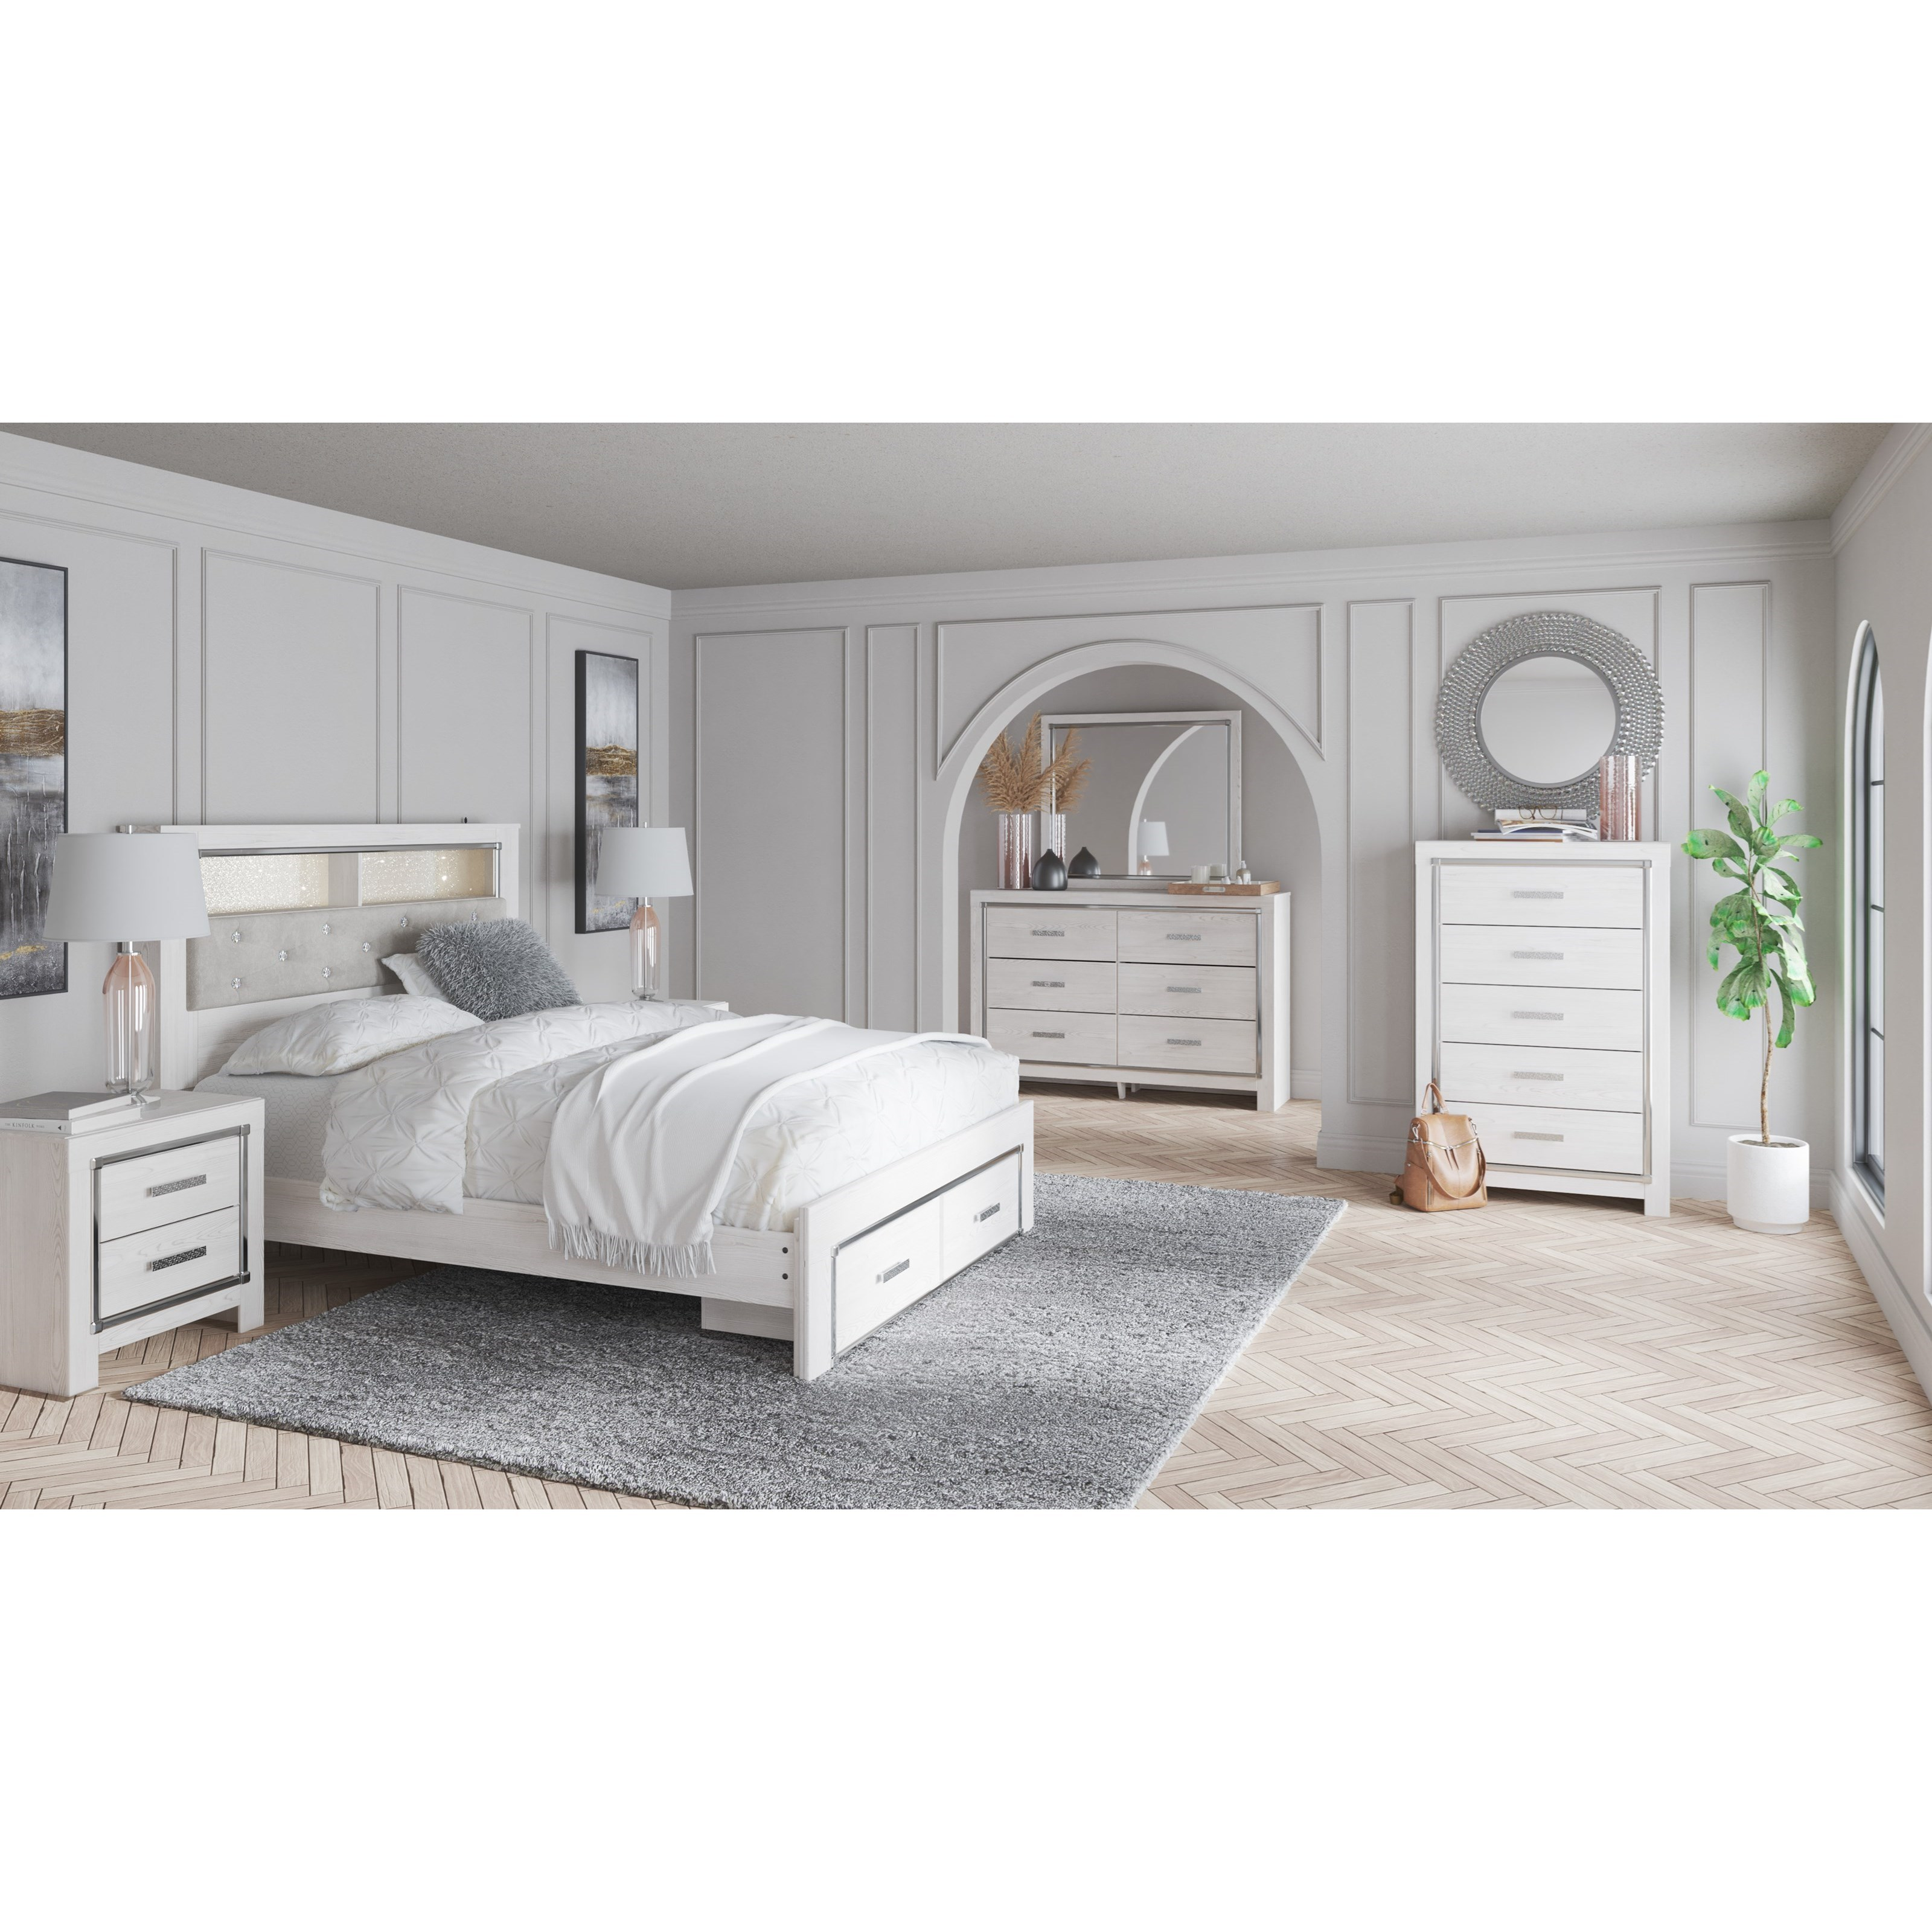 Altyra Queen Bedroom Group by Signature Design by Ashley at Catalog Outlet